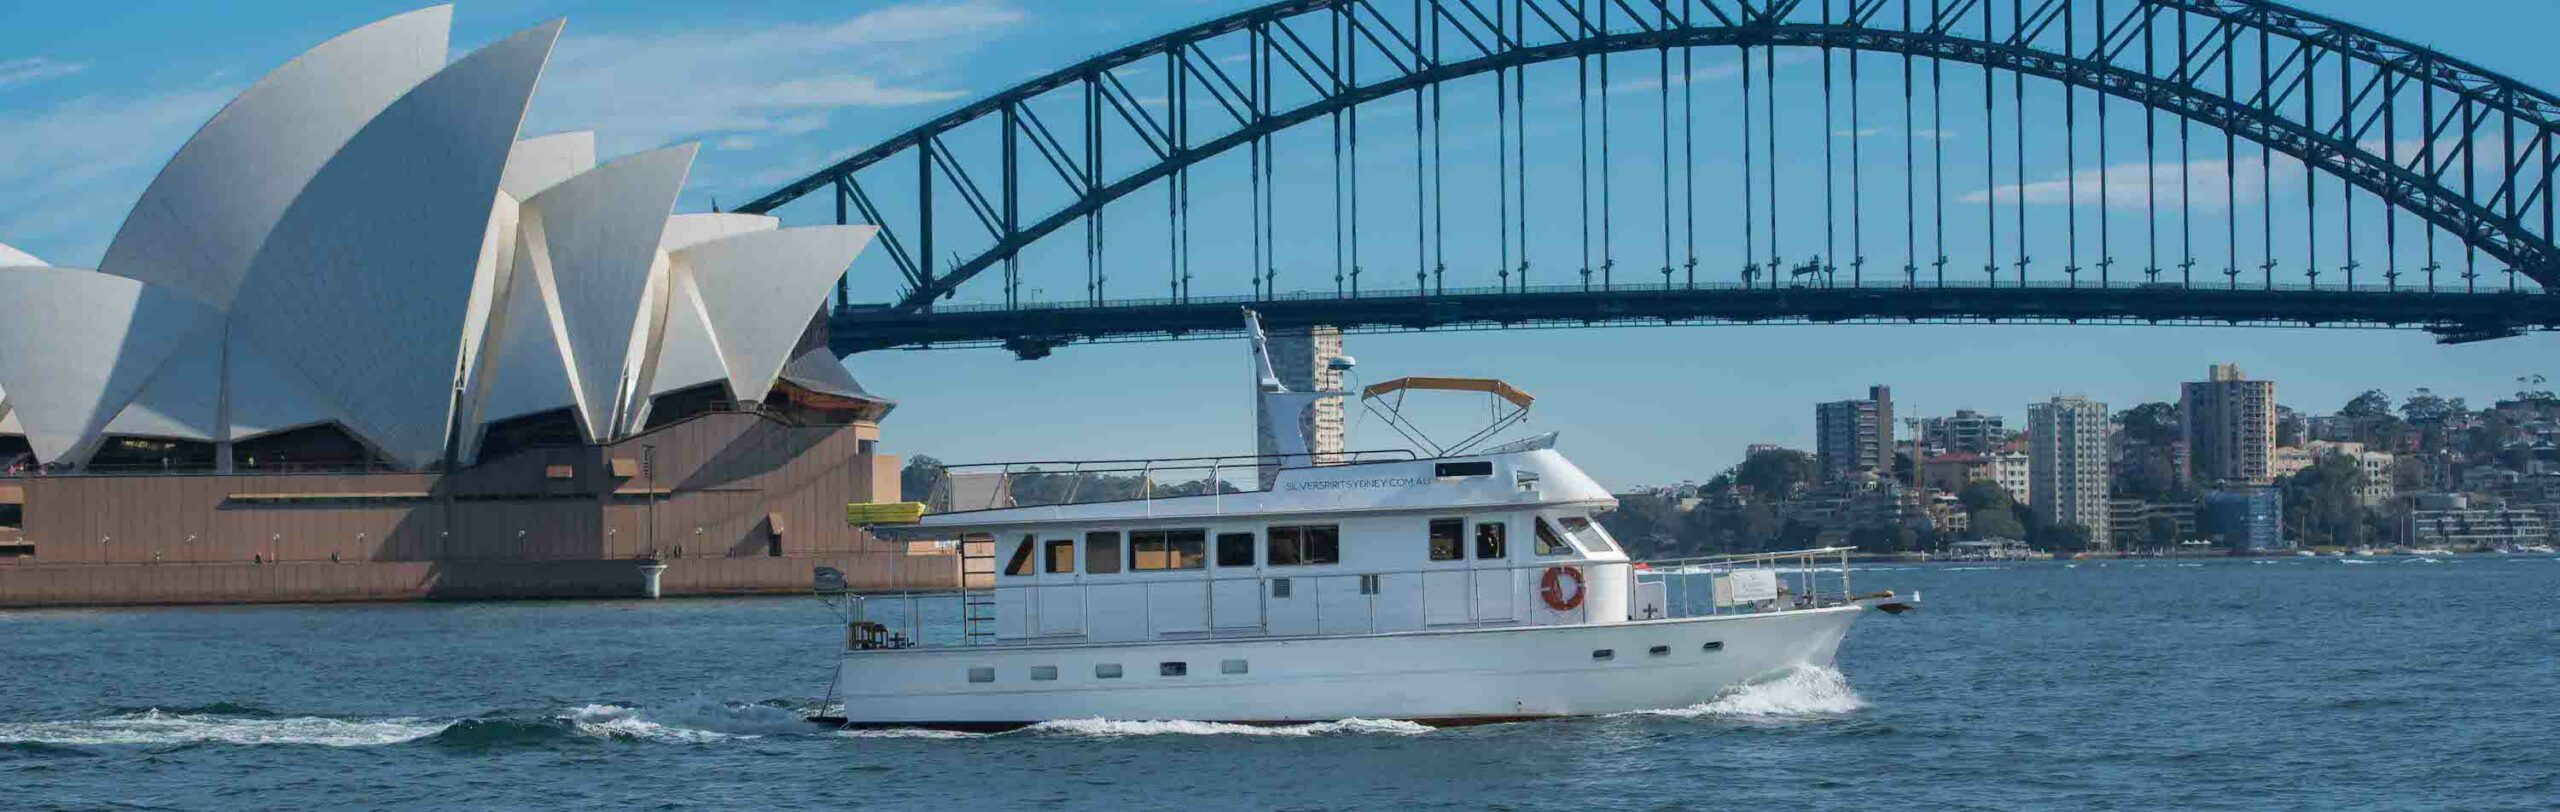 luxury hens party boat